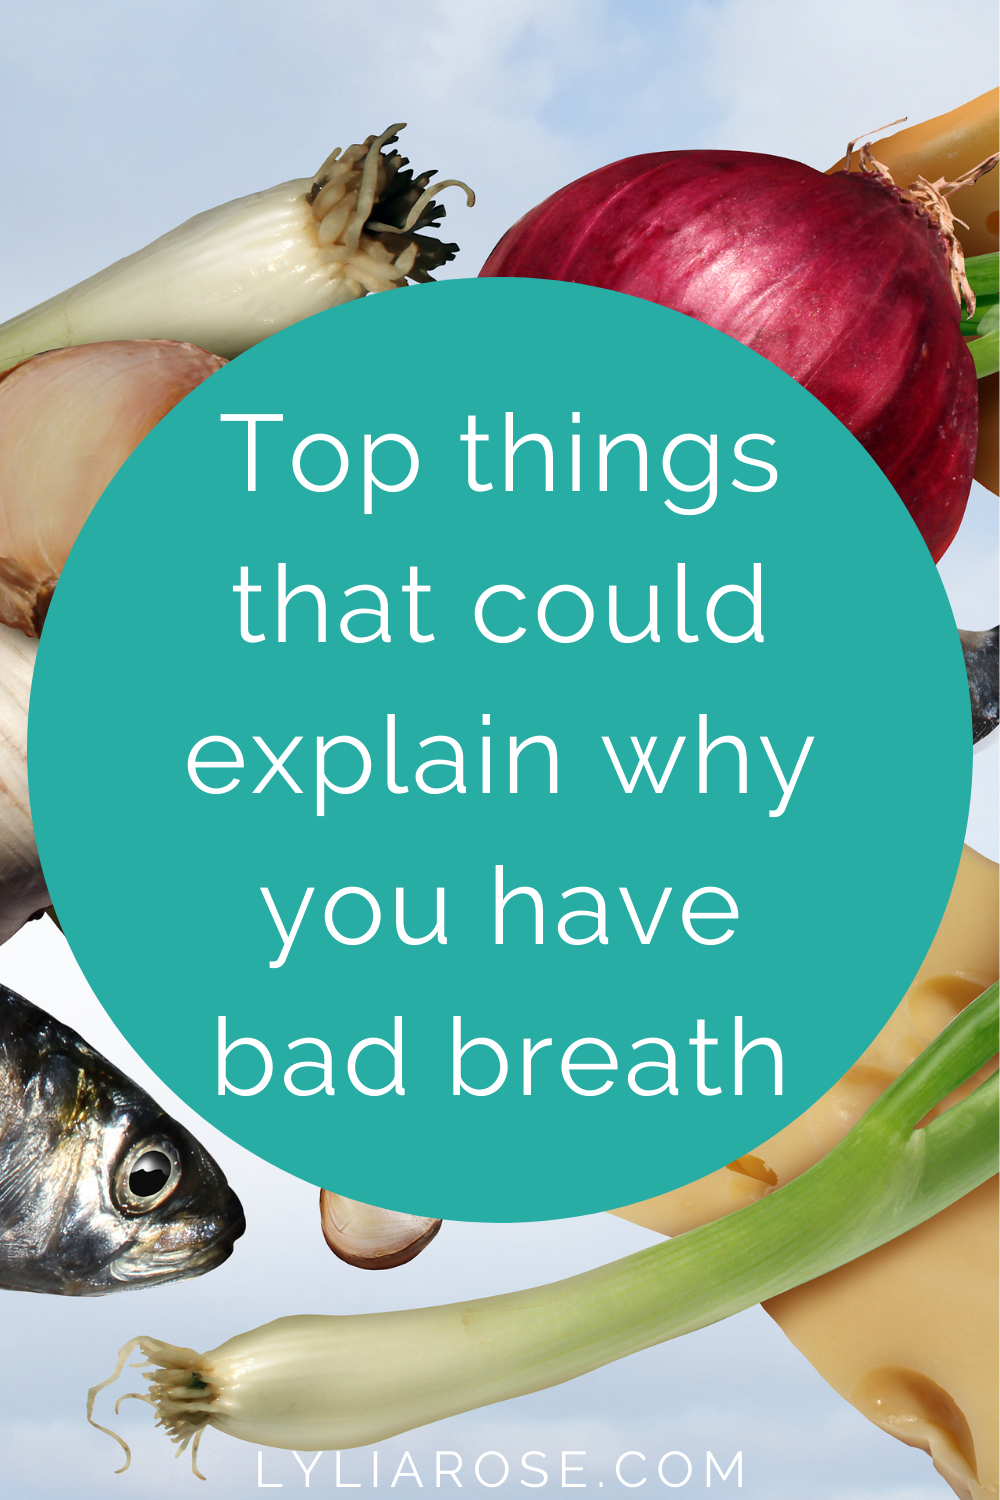 Top things that could explain why you have bad breath